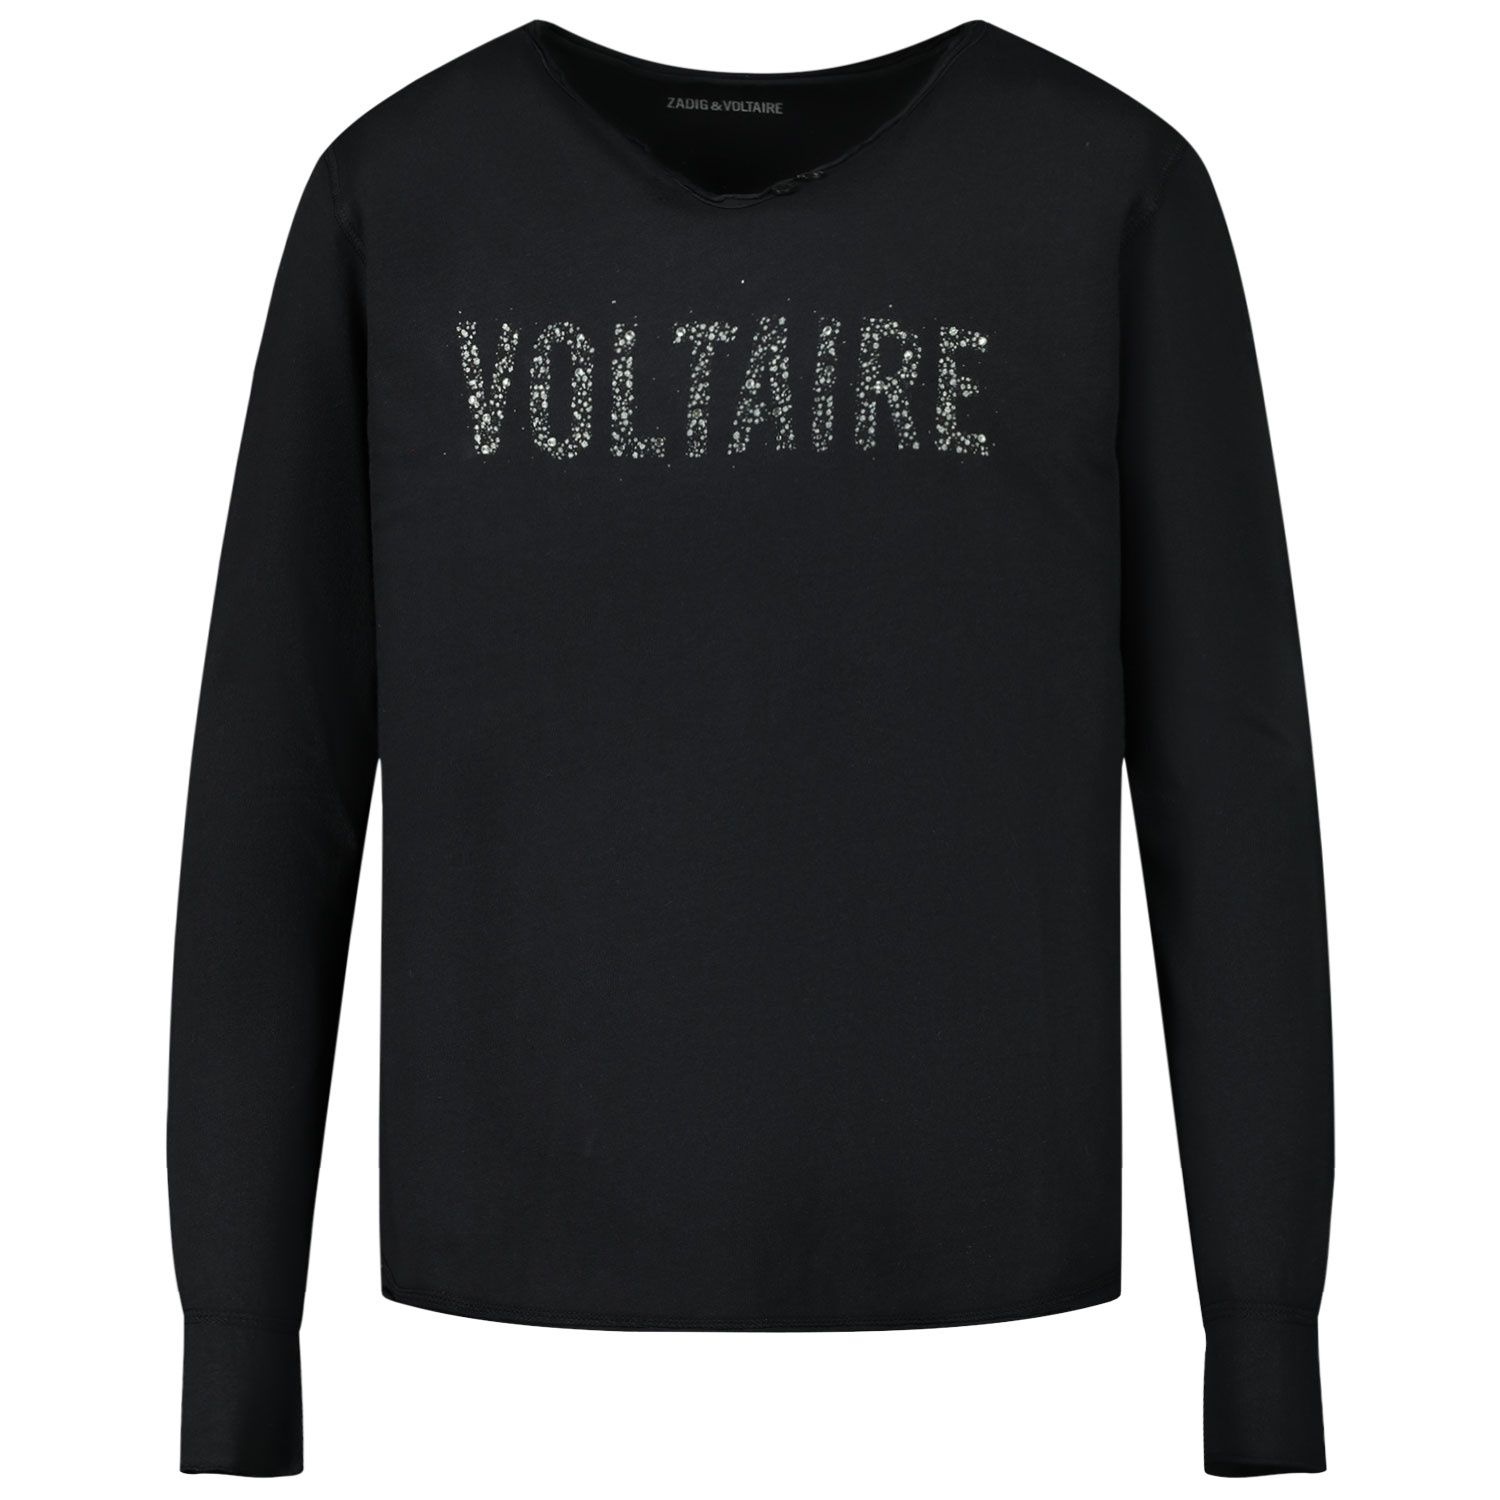 Picture of Zadig & Voltaire X15241 kids t-shirt black